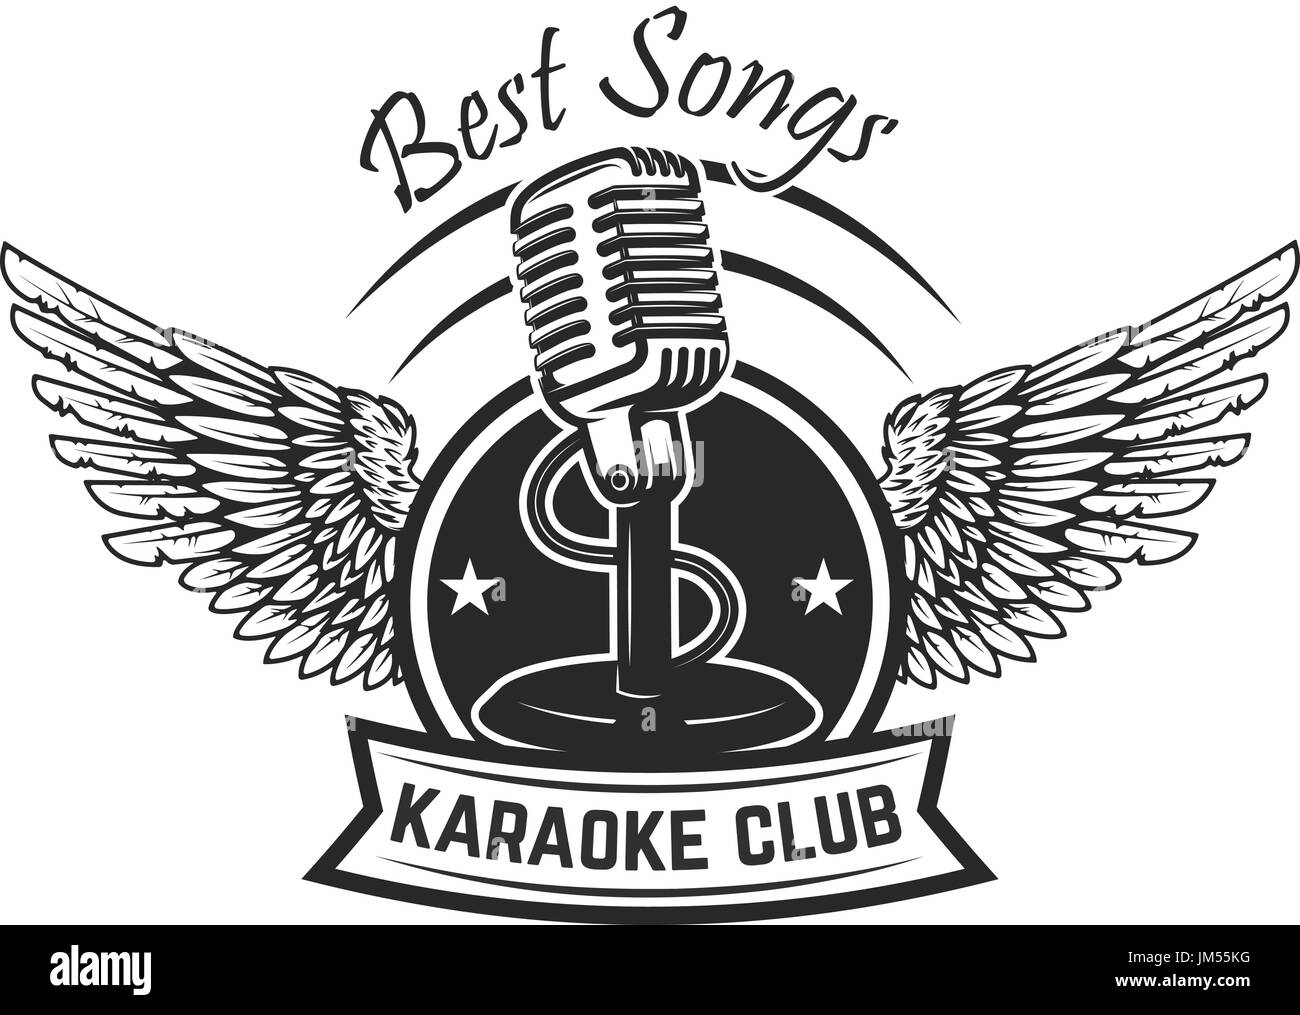 karaoke club label template emblem with vintage microphone and